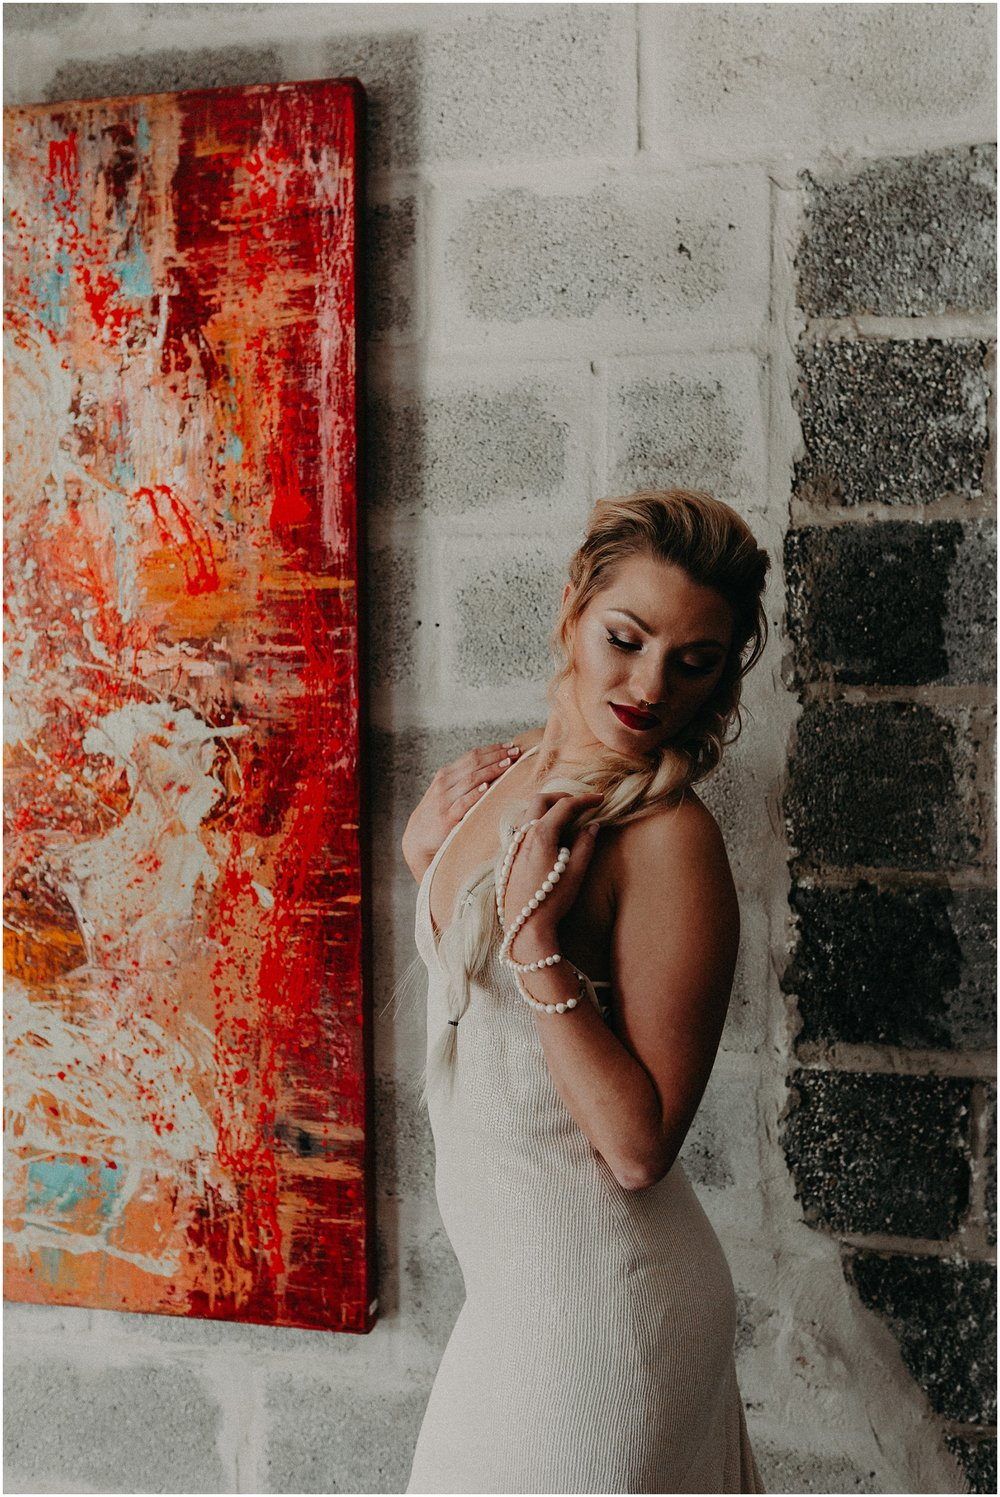 styled shoot-bridal portraits-portraits-bride-rock and roll-industrial-urban-wedding-inspiration-nj-new jersey-nyc-new york city-art-diy wedding_0052.jpg